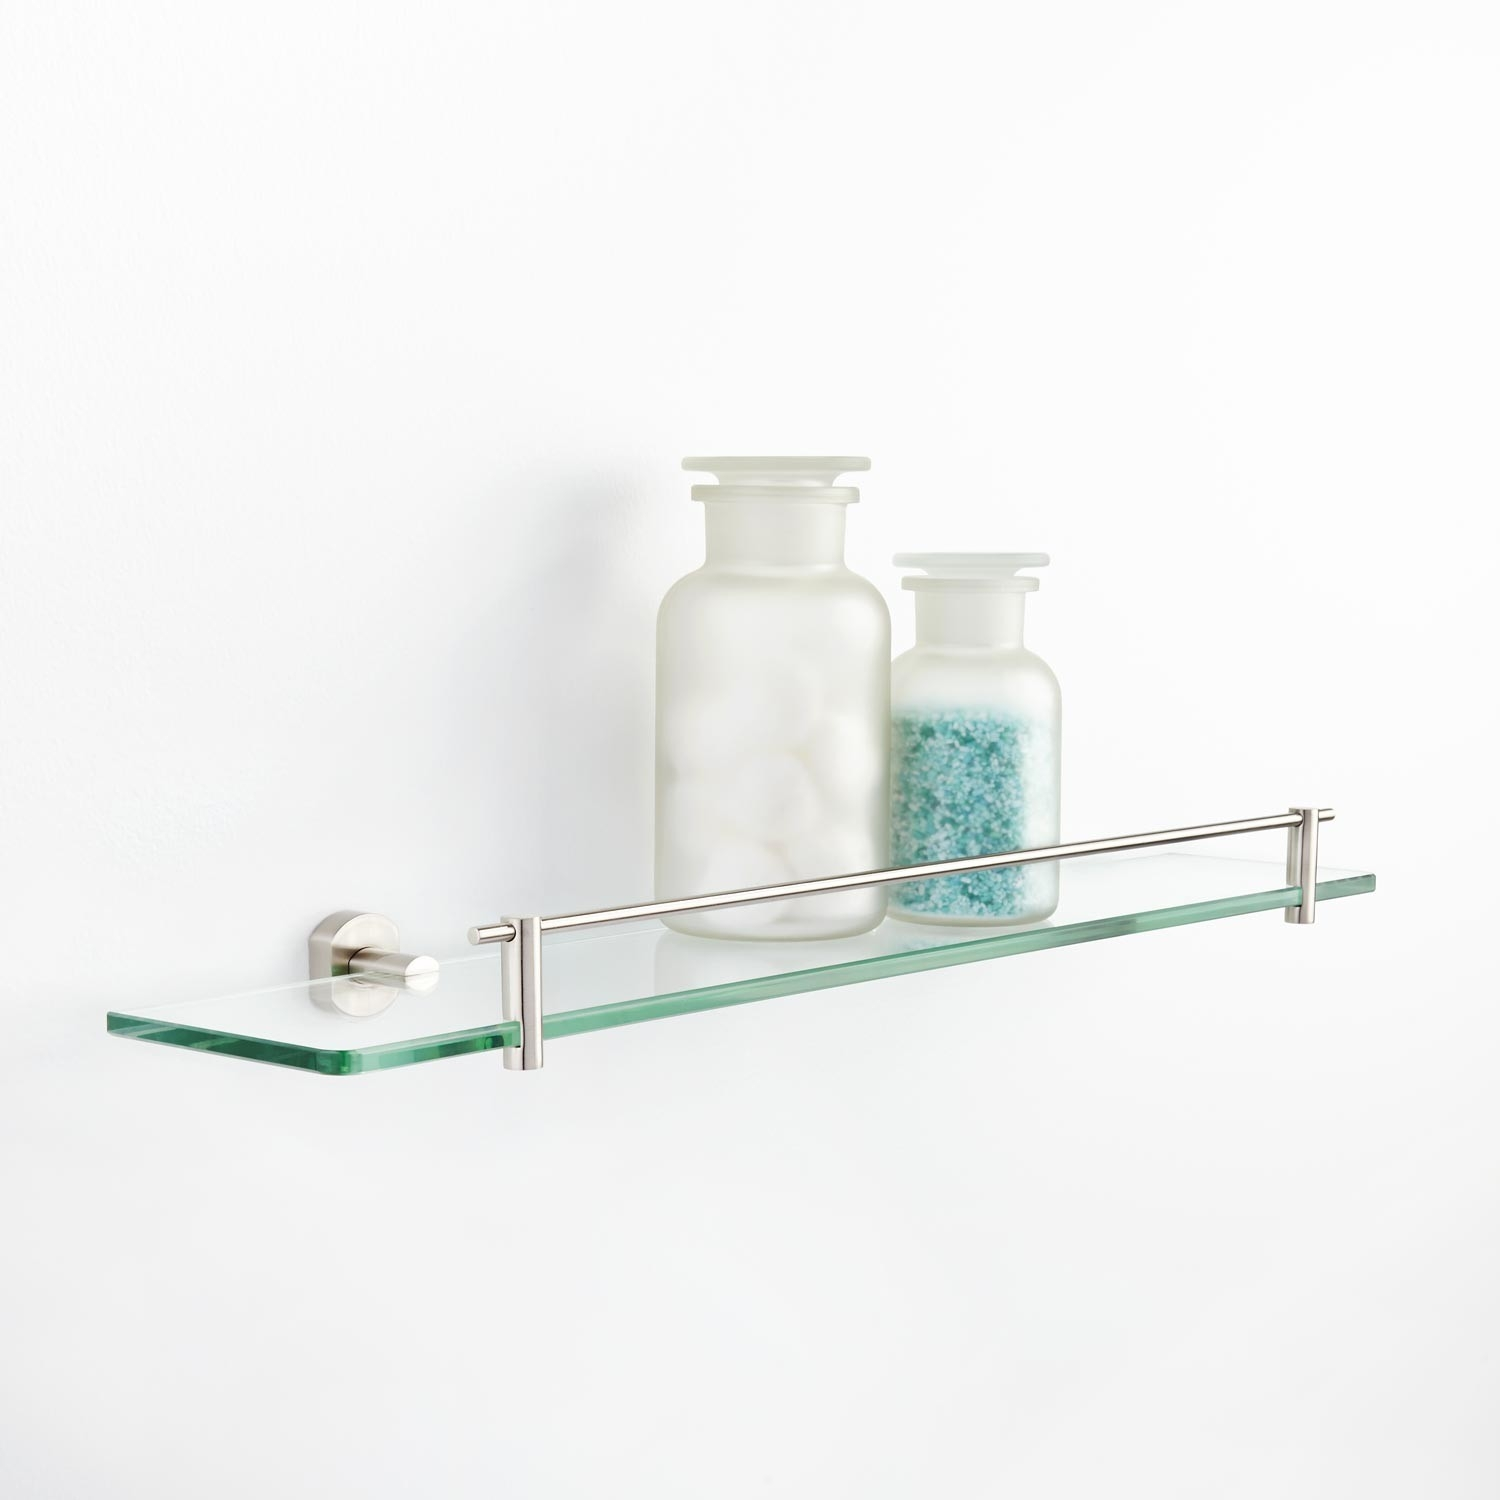 Marlton Tempered Glass Shelf Bathroom Throughout Glass Shelves (Image 10 of 15)